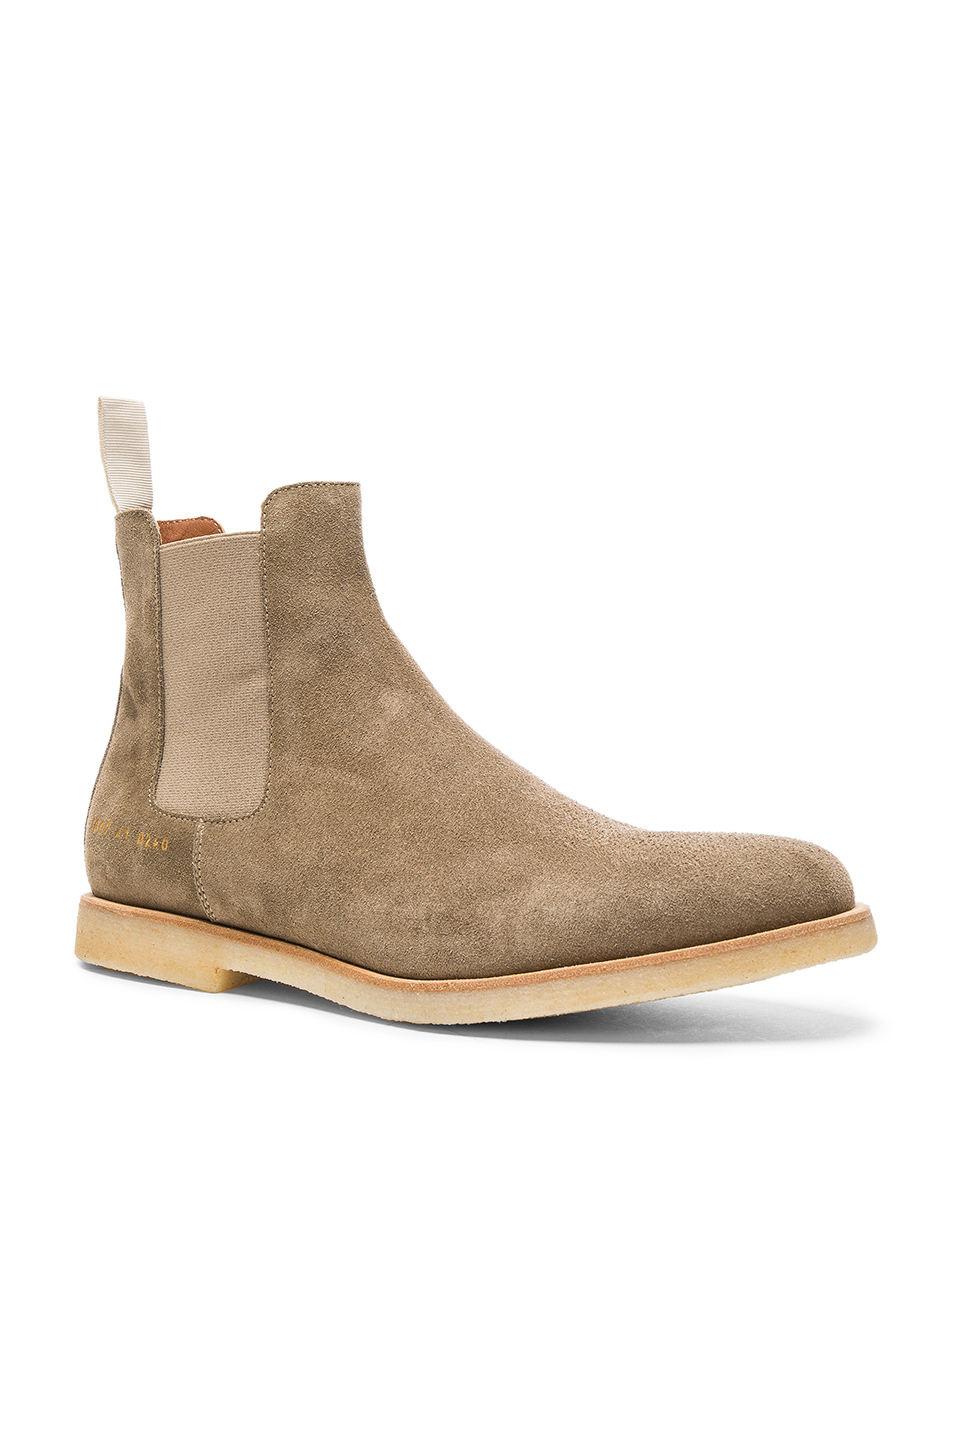 Common Projects Suede Chelsea Boots in Brown